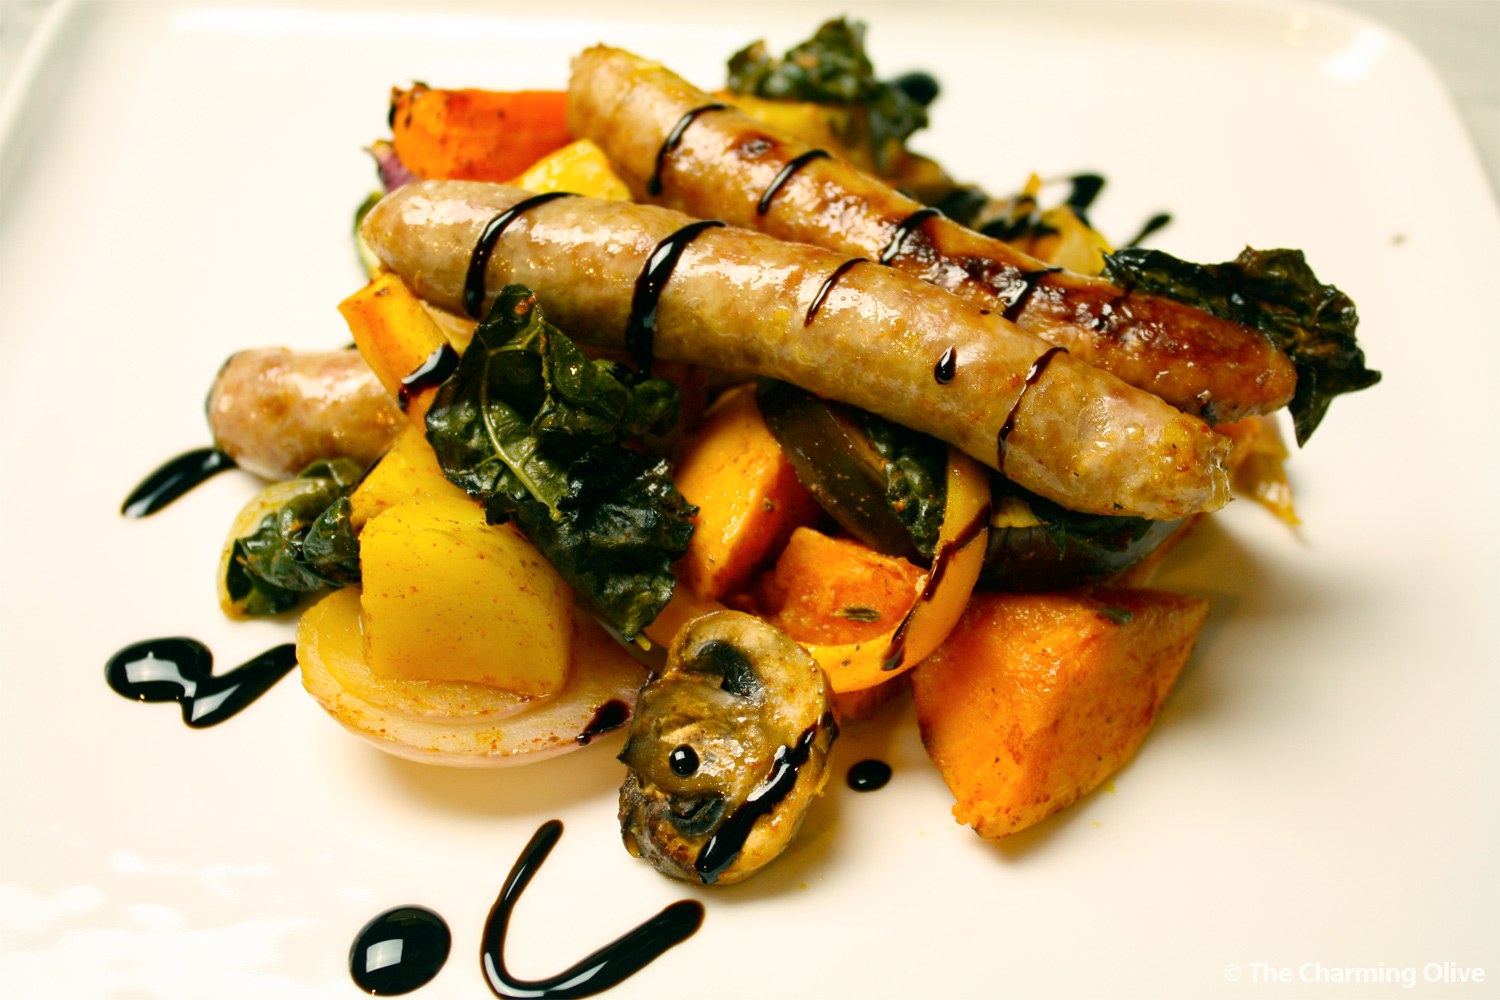 Sausage & Vegetable Medley